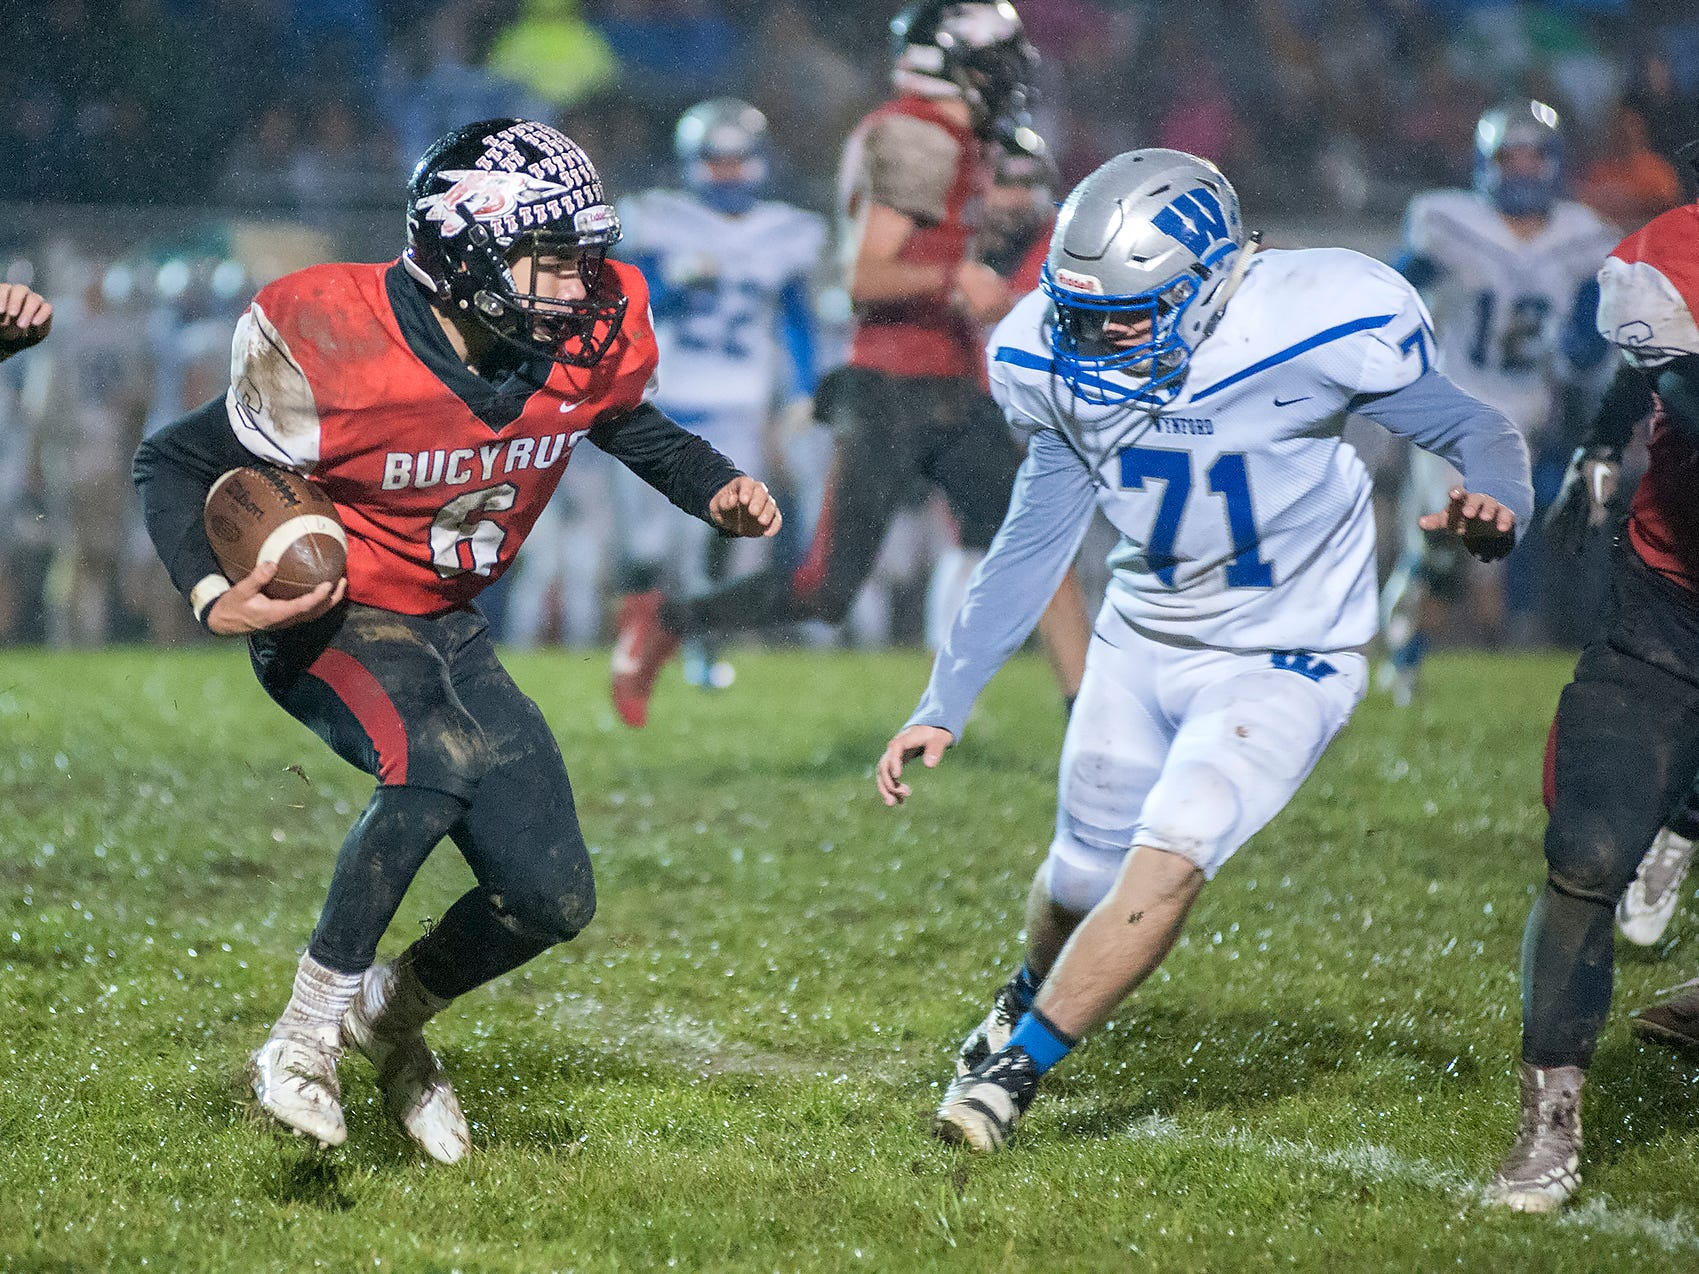 Bucyrus' Lincoln Mollenkopf tries to avoid Wynford's Zach Harer.